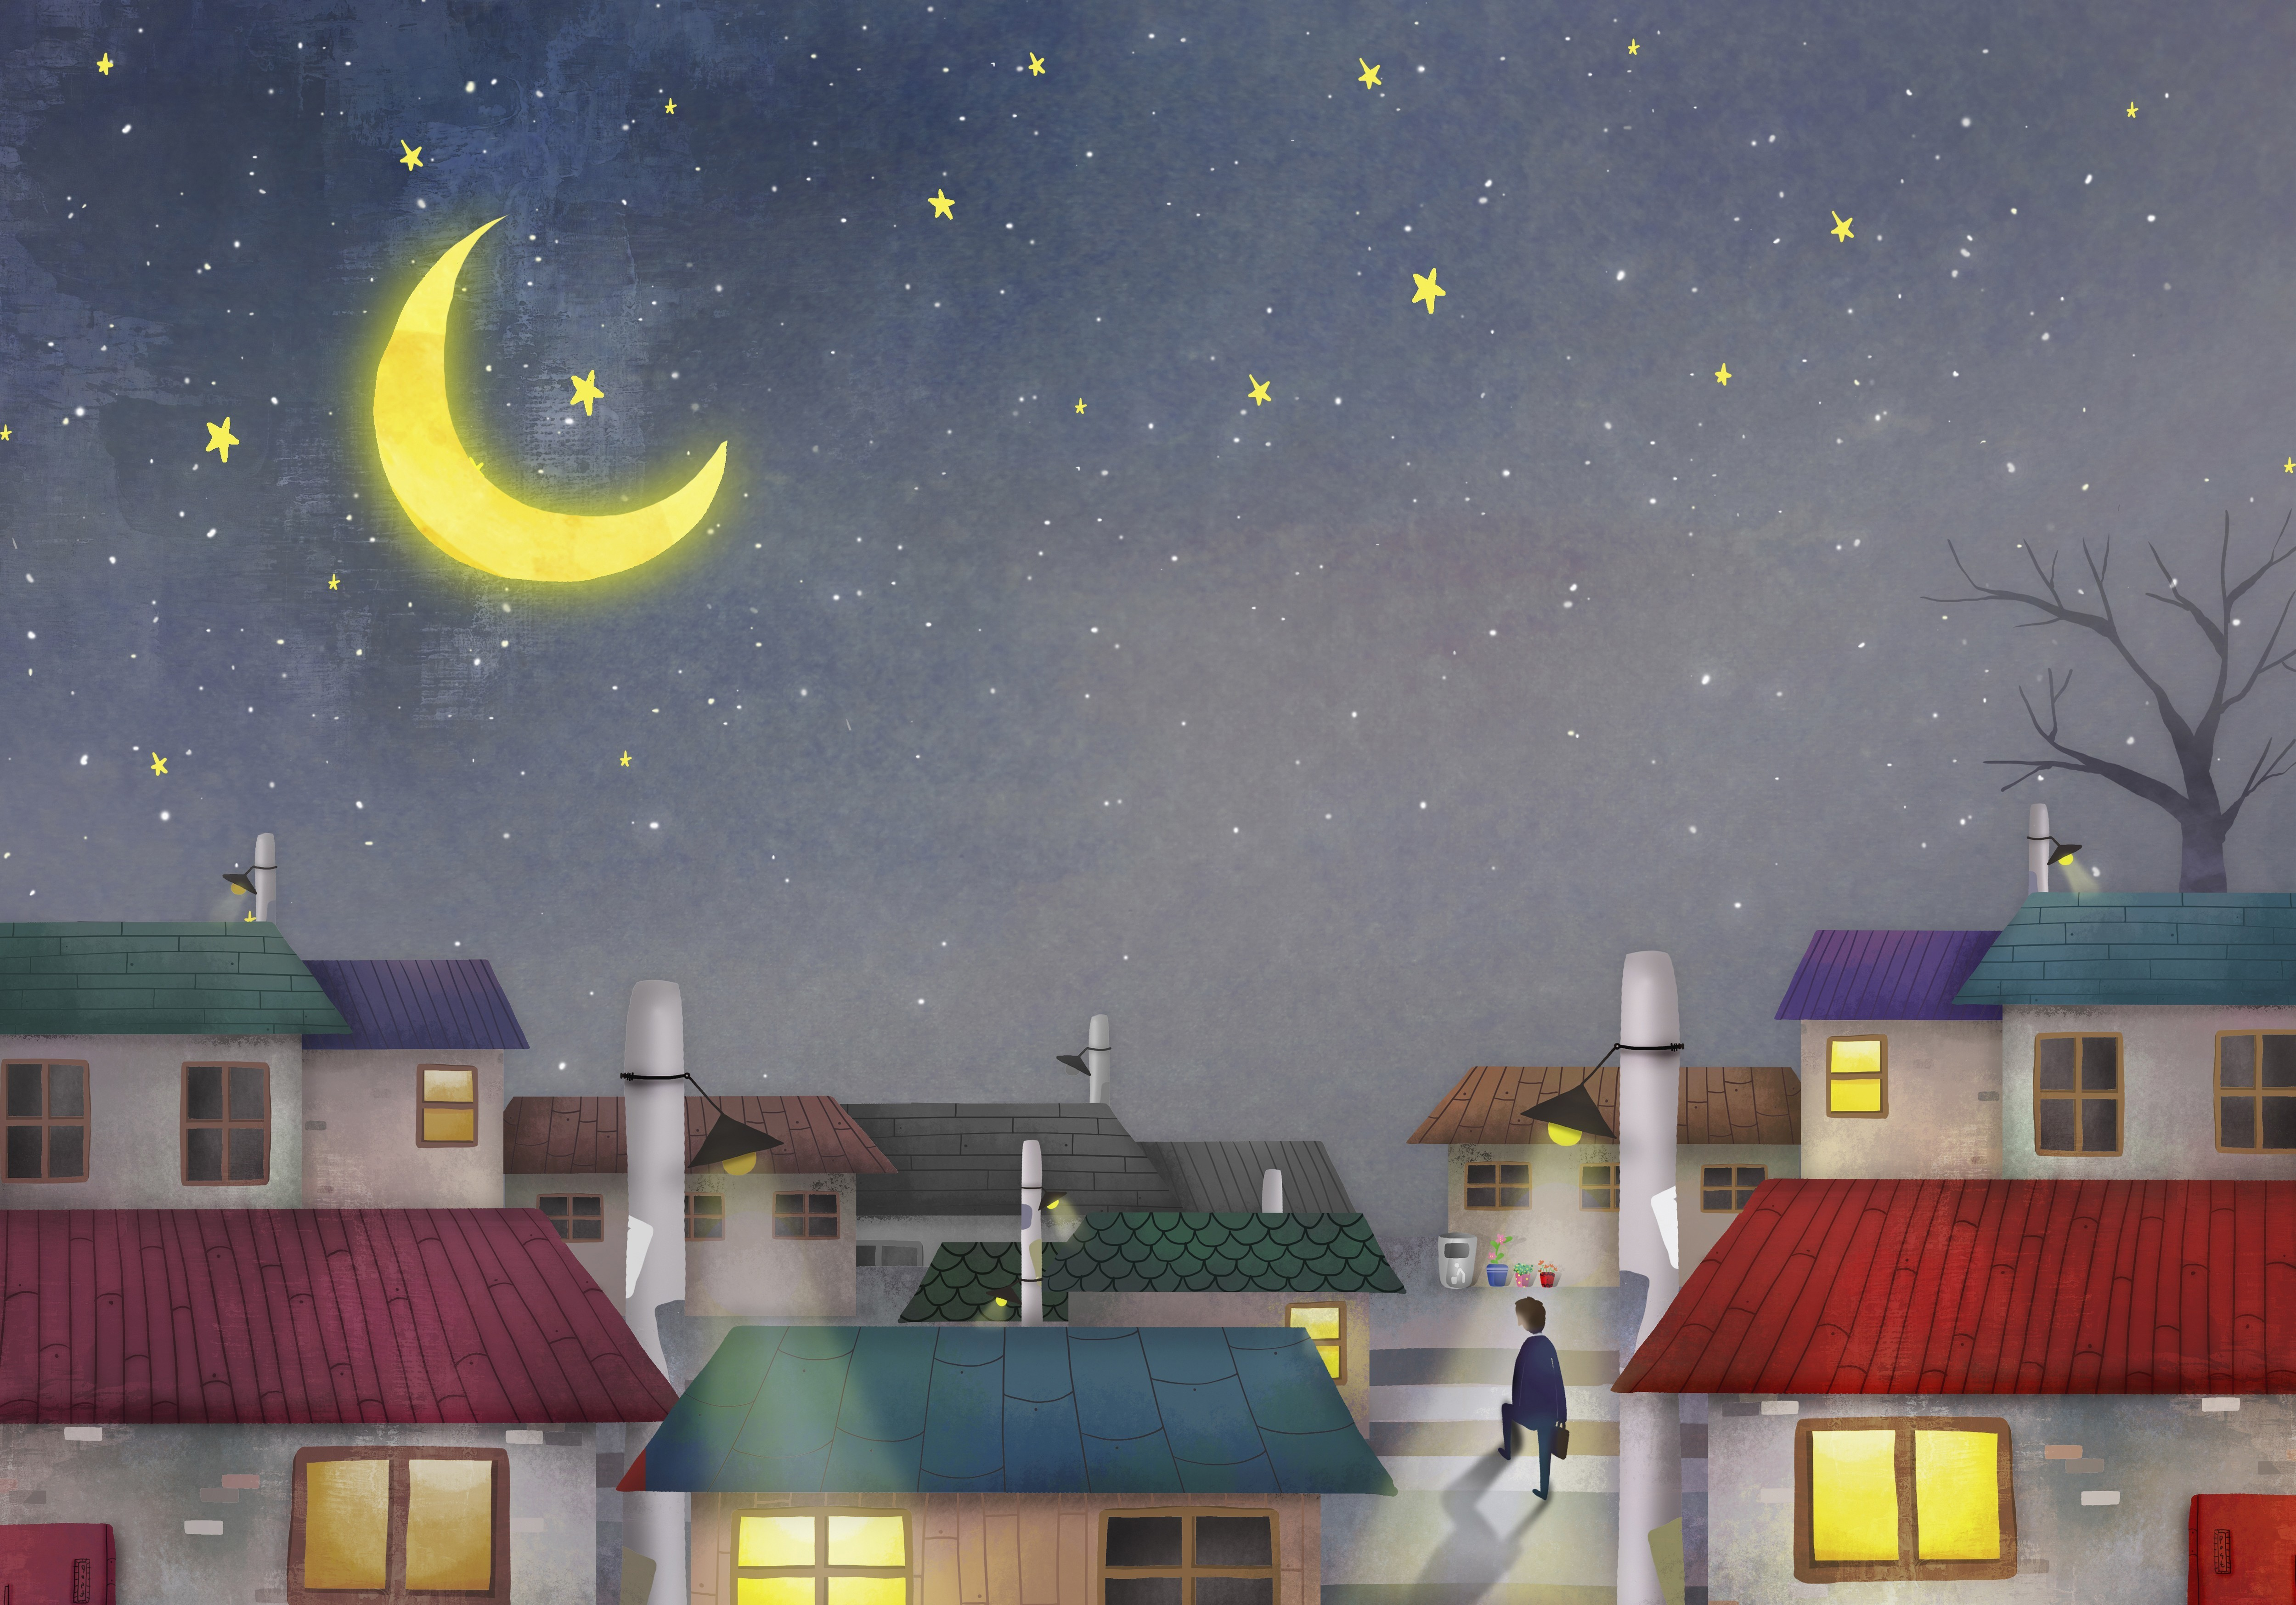 Should You Leave Your Lights On At Night? It Depends : NPR